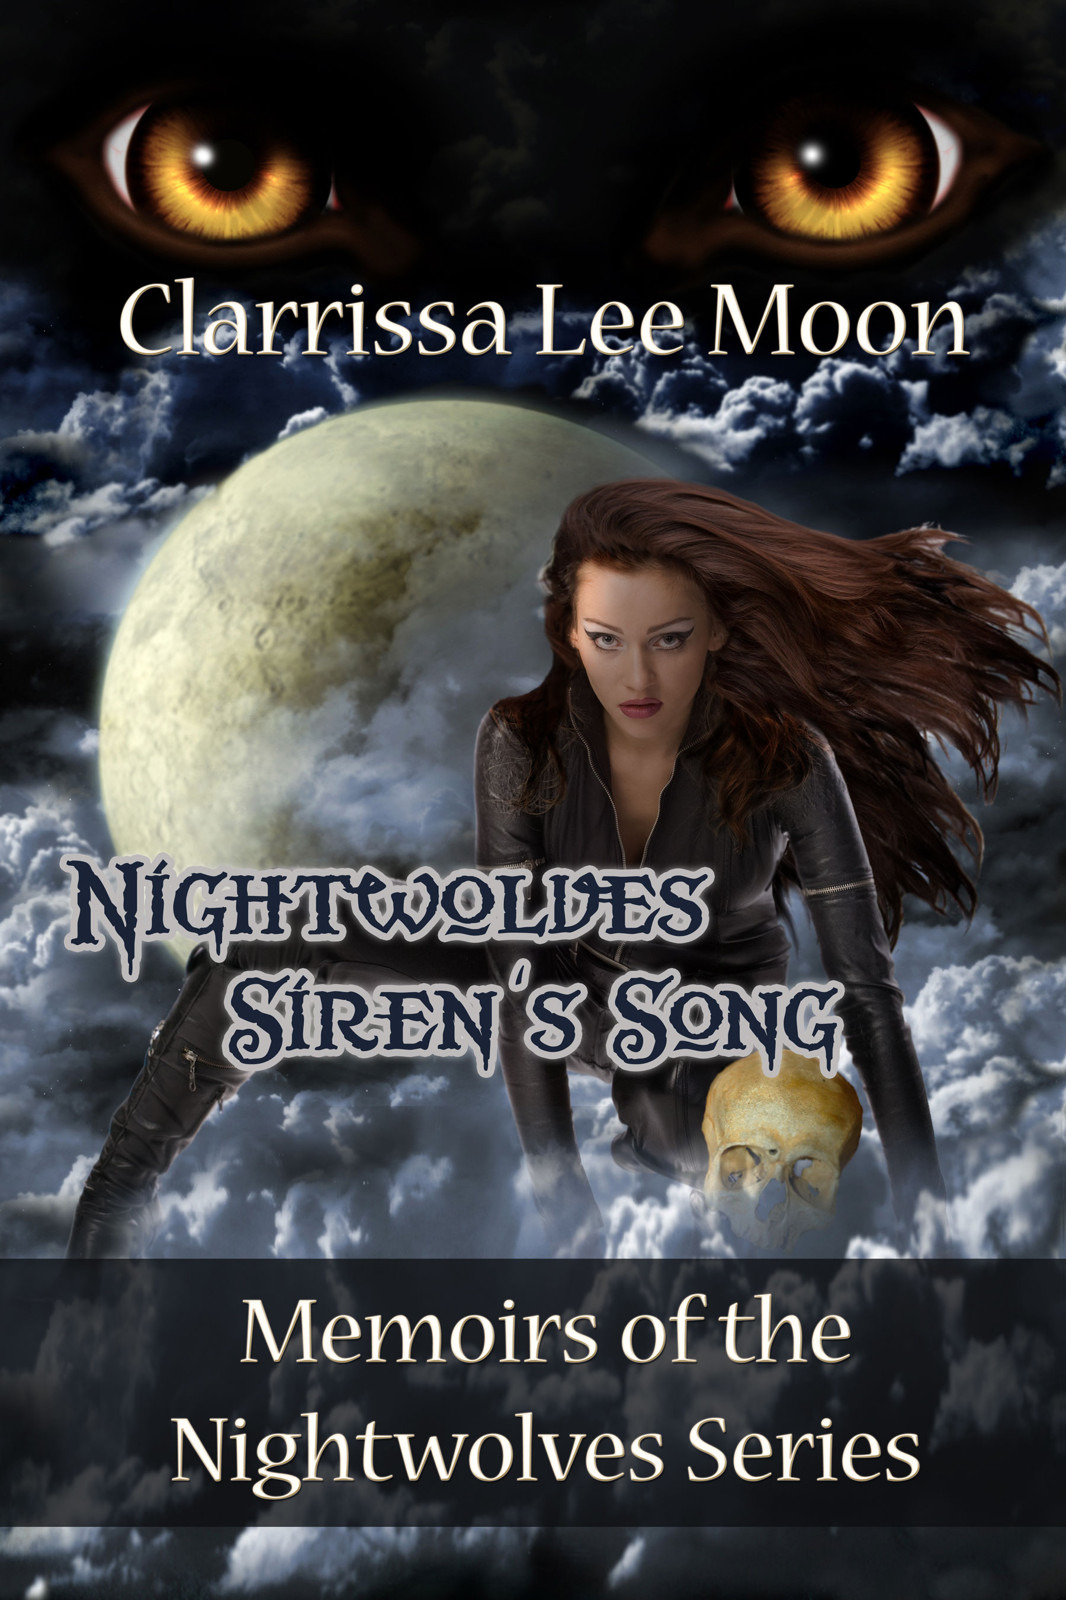 Nightwolves Siren's Song - Memoirs of the Nightwolves Series Book 3